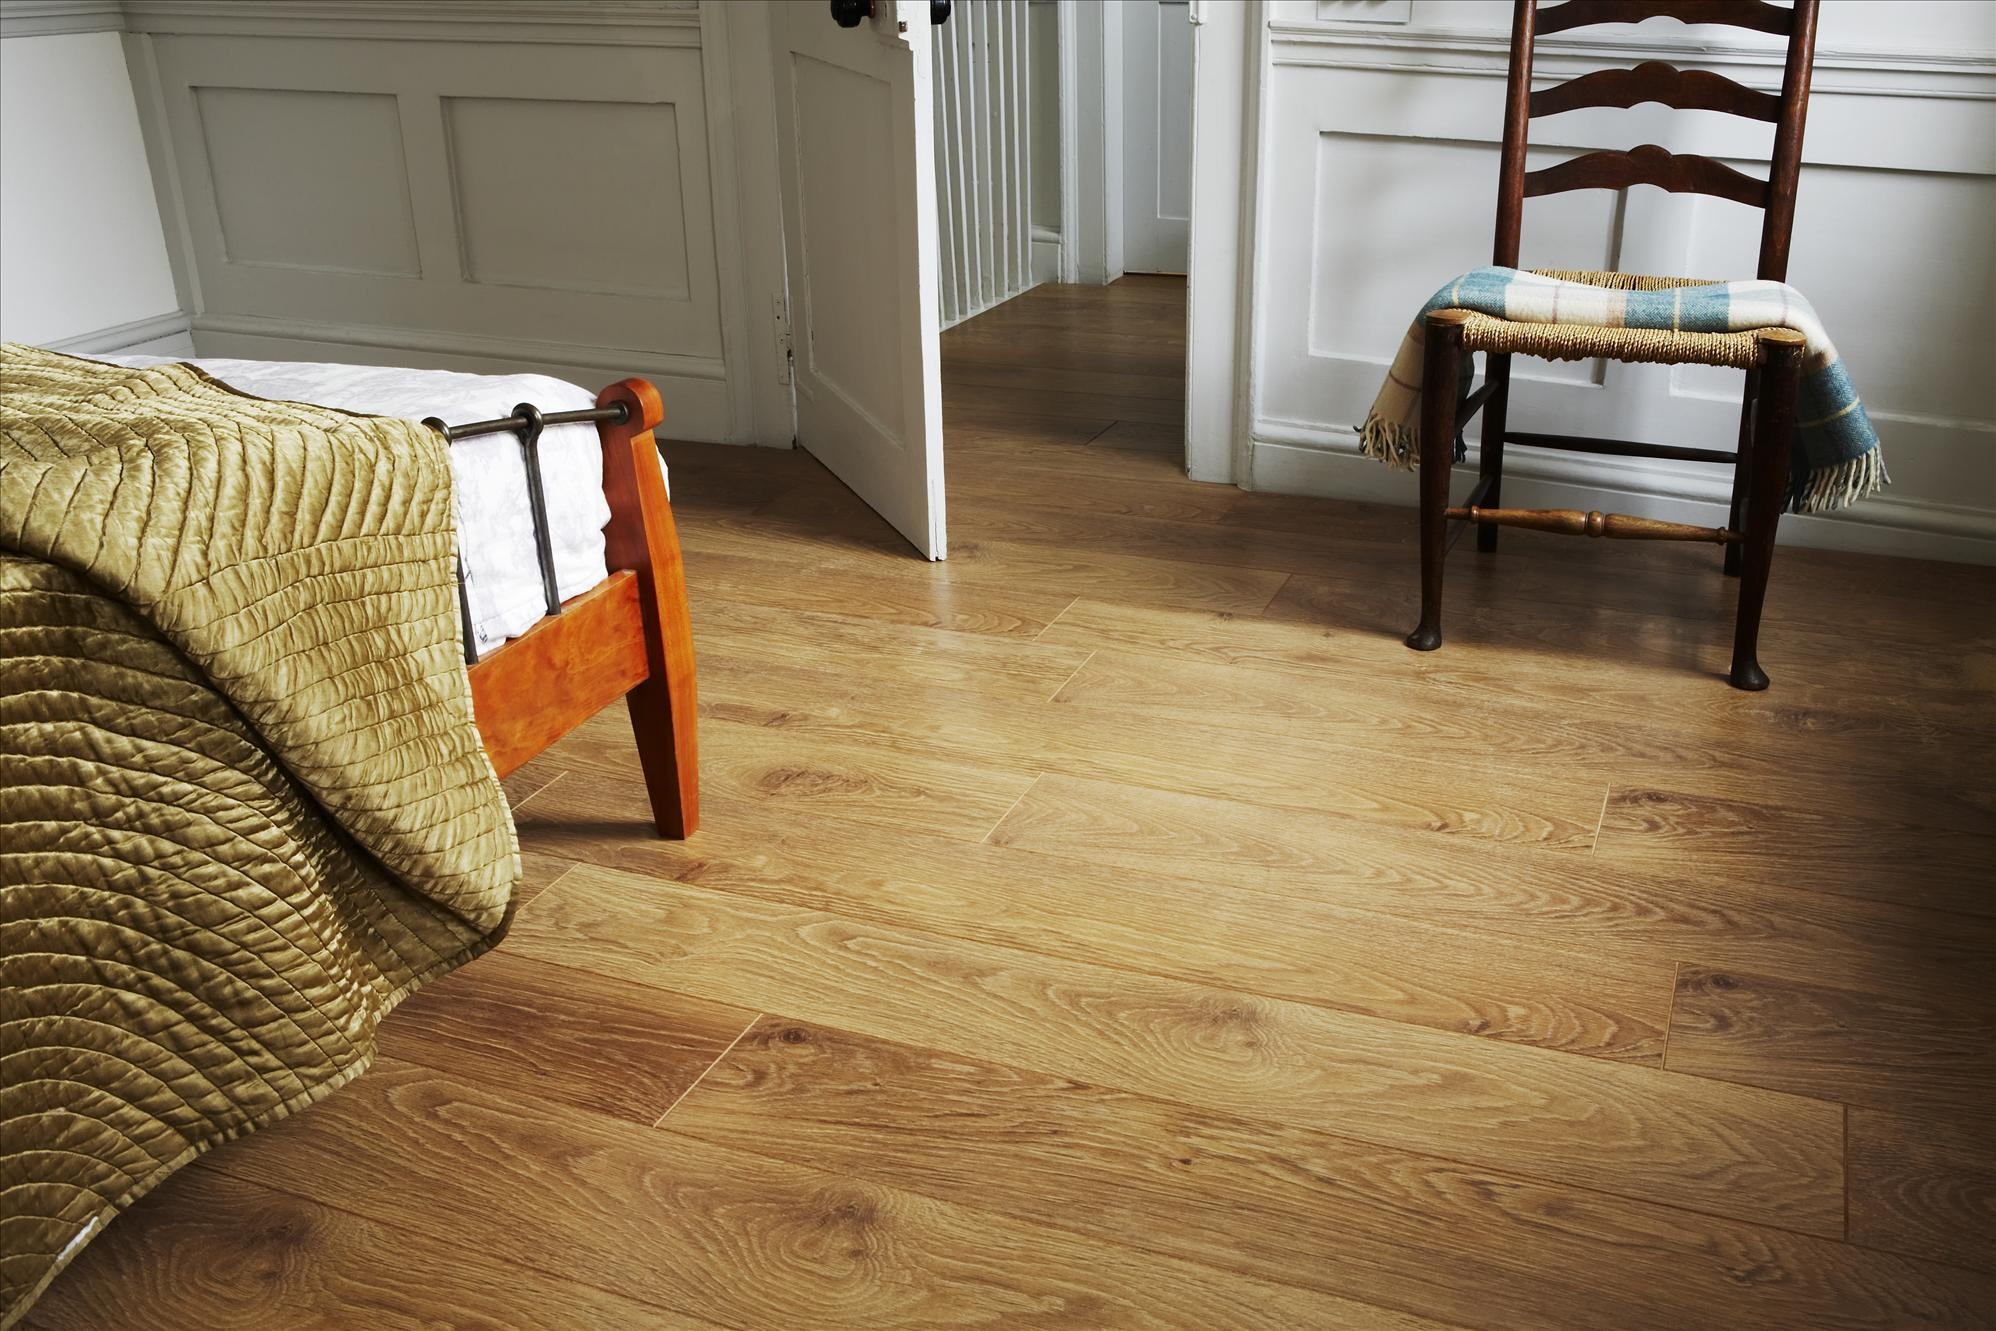 Laminate flooring manchester sale altrincham chorlton for Laminate flooring sale